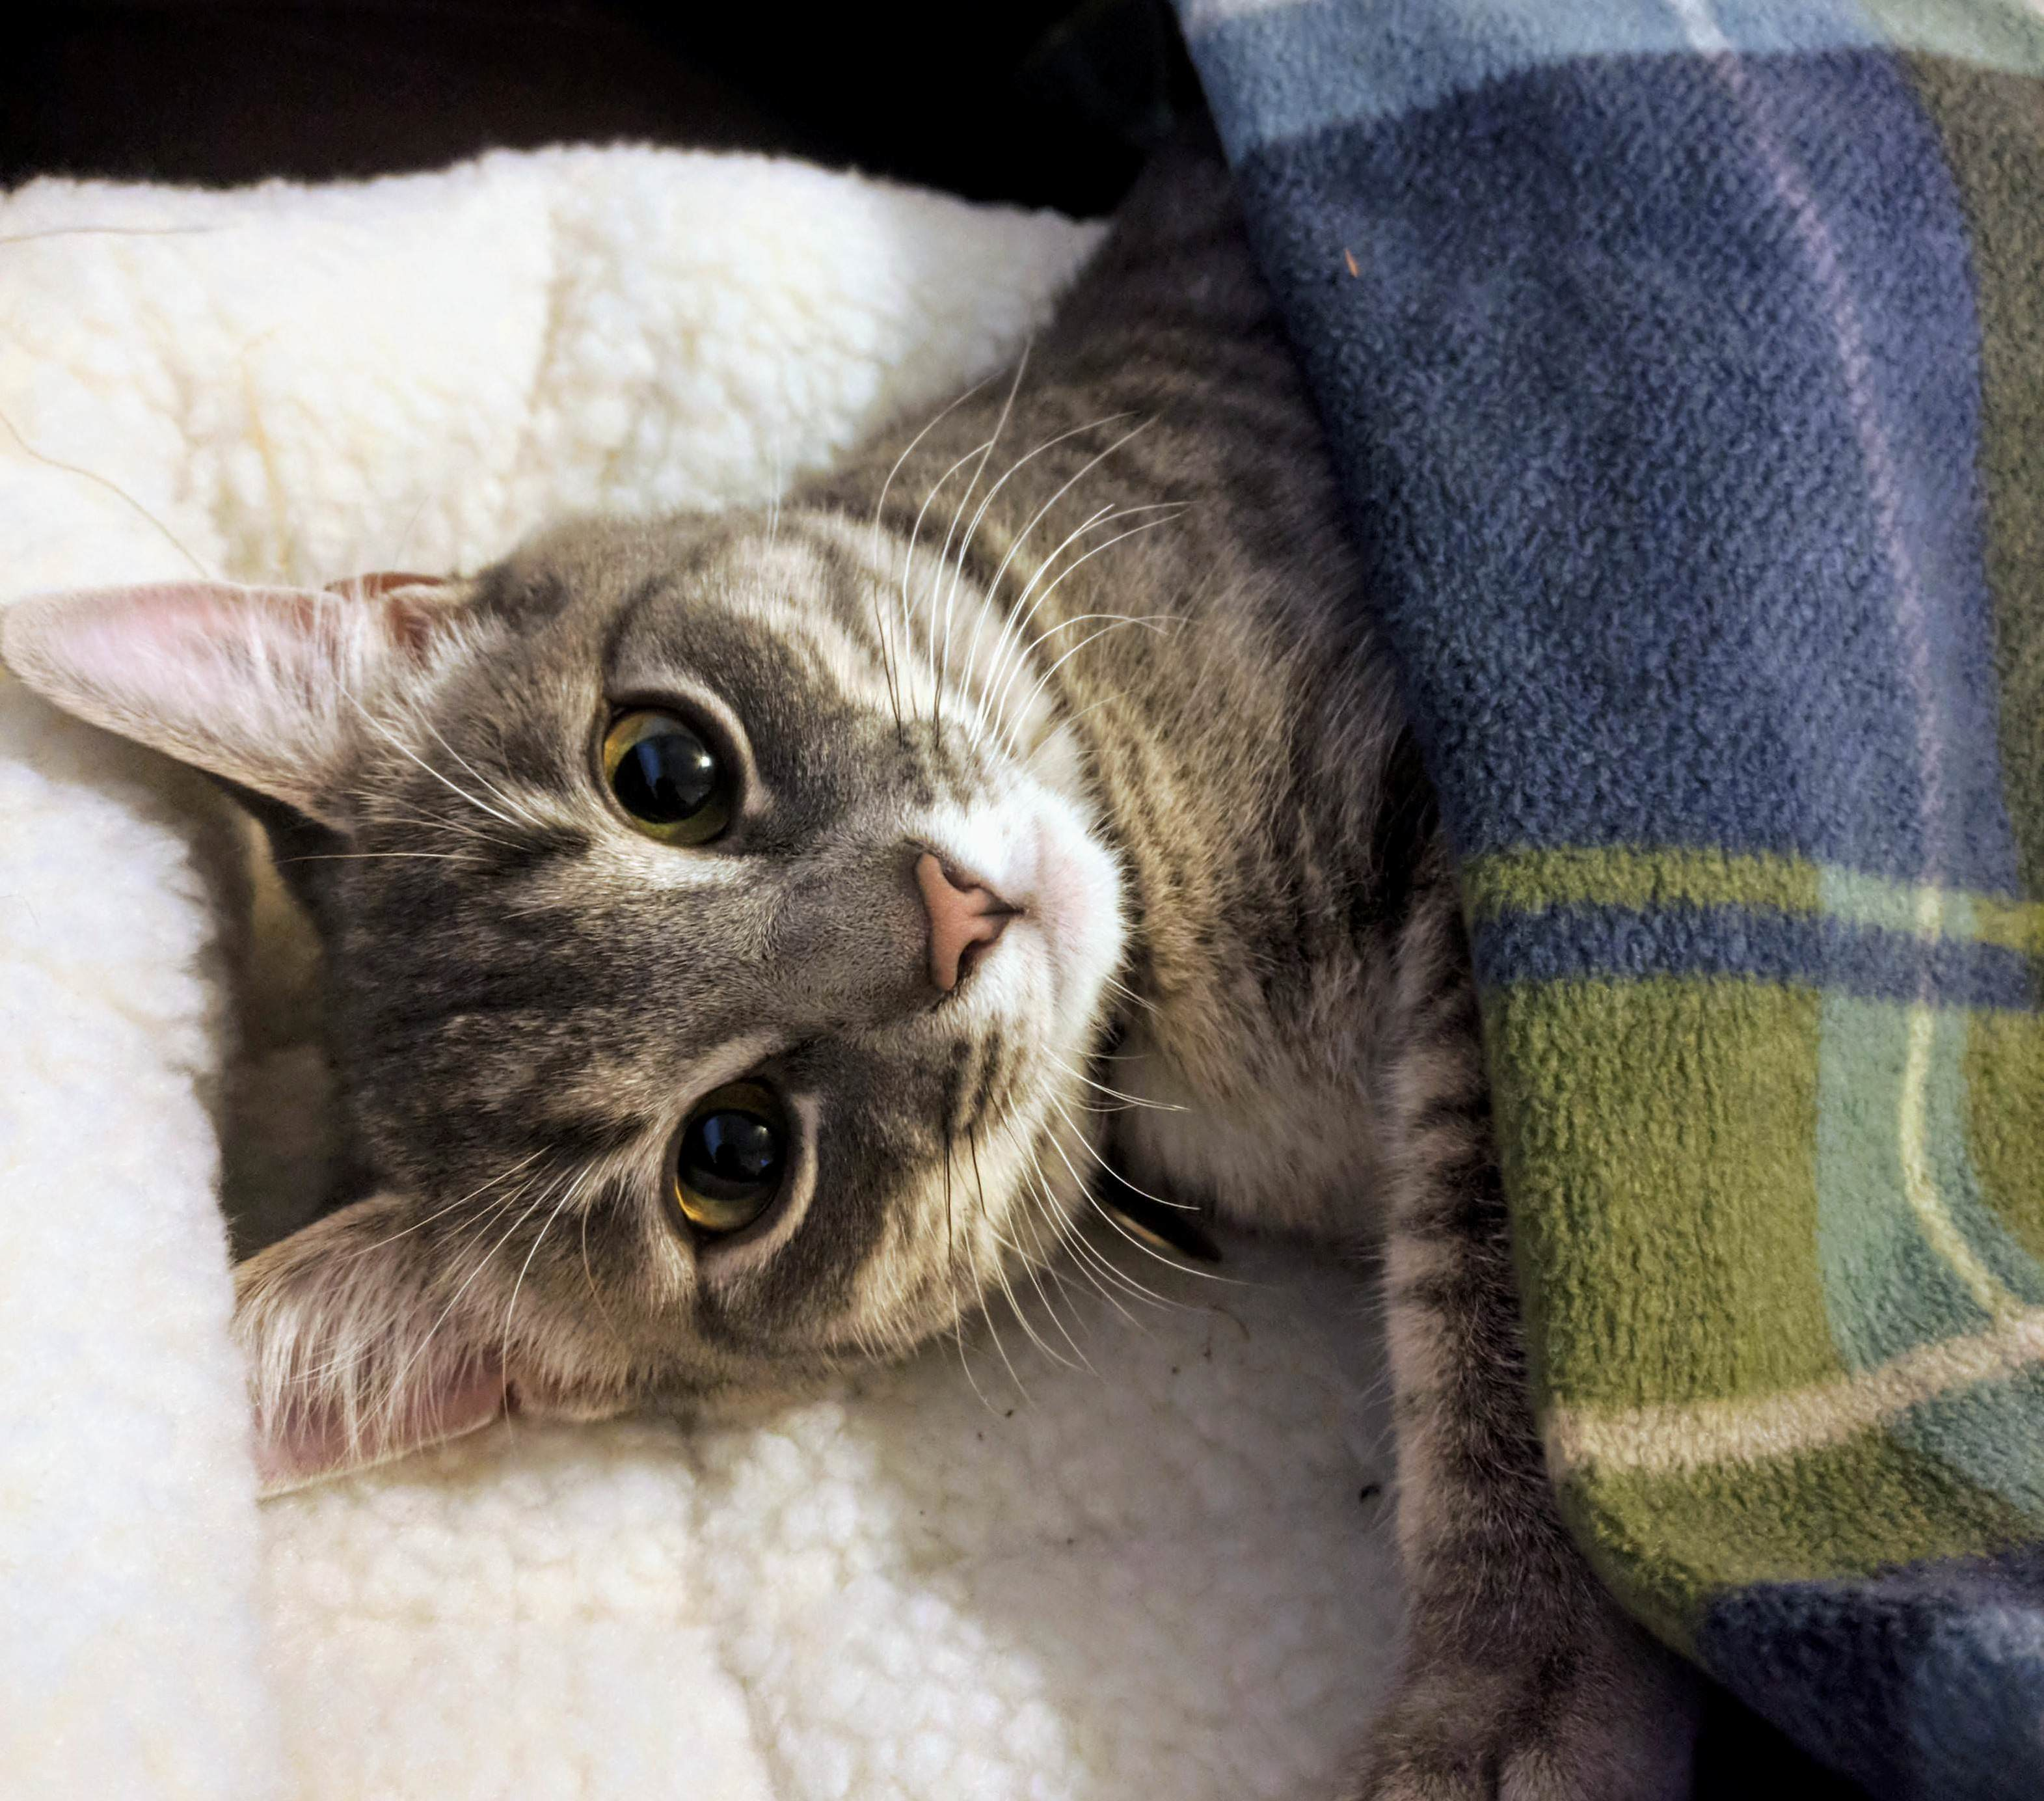 Sabine tucked in before the snow storm this morning